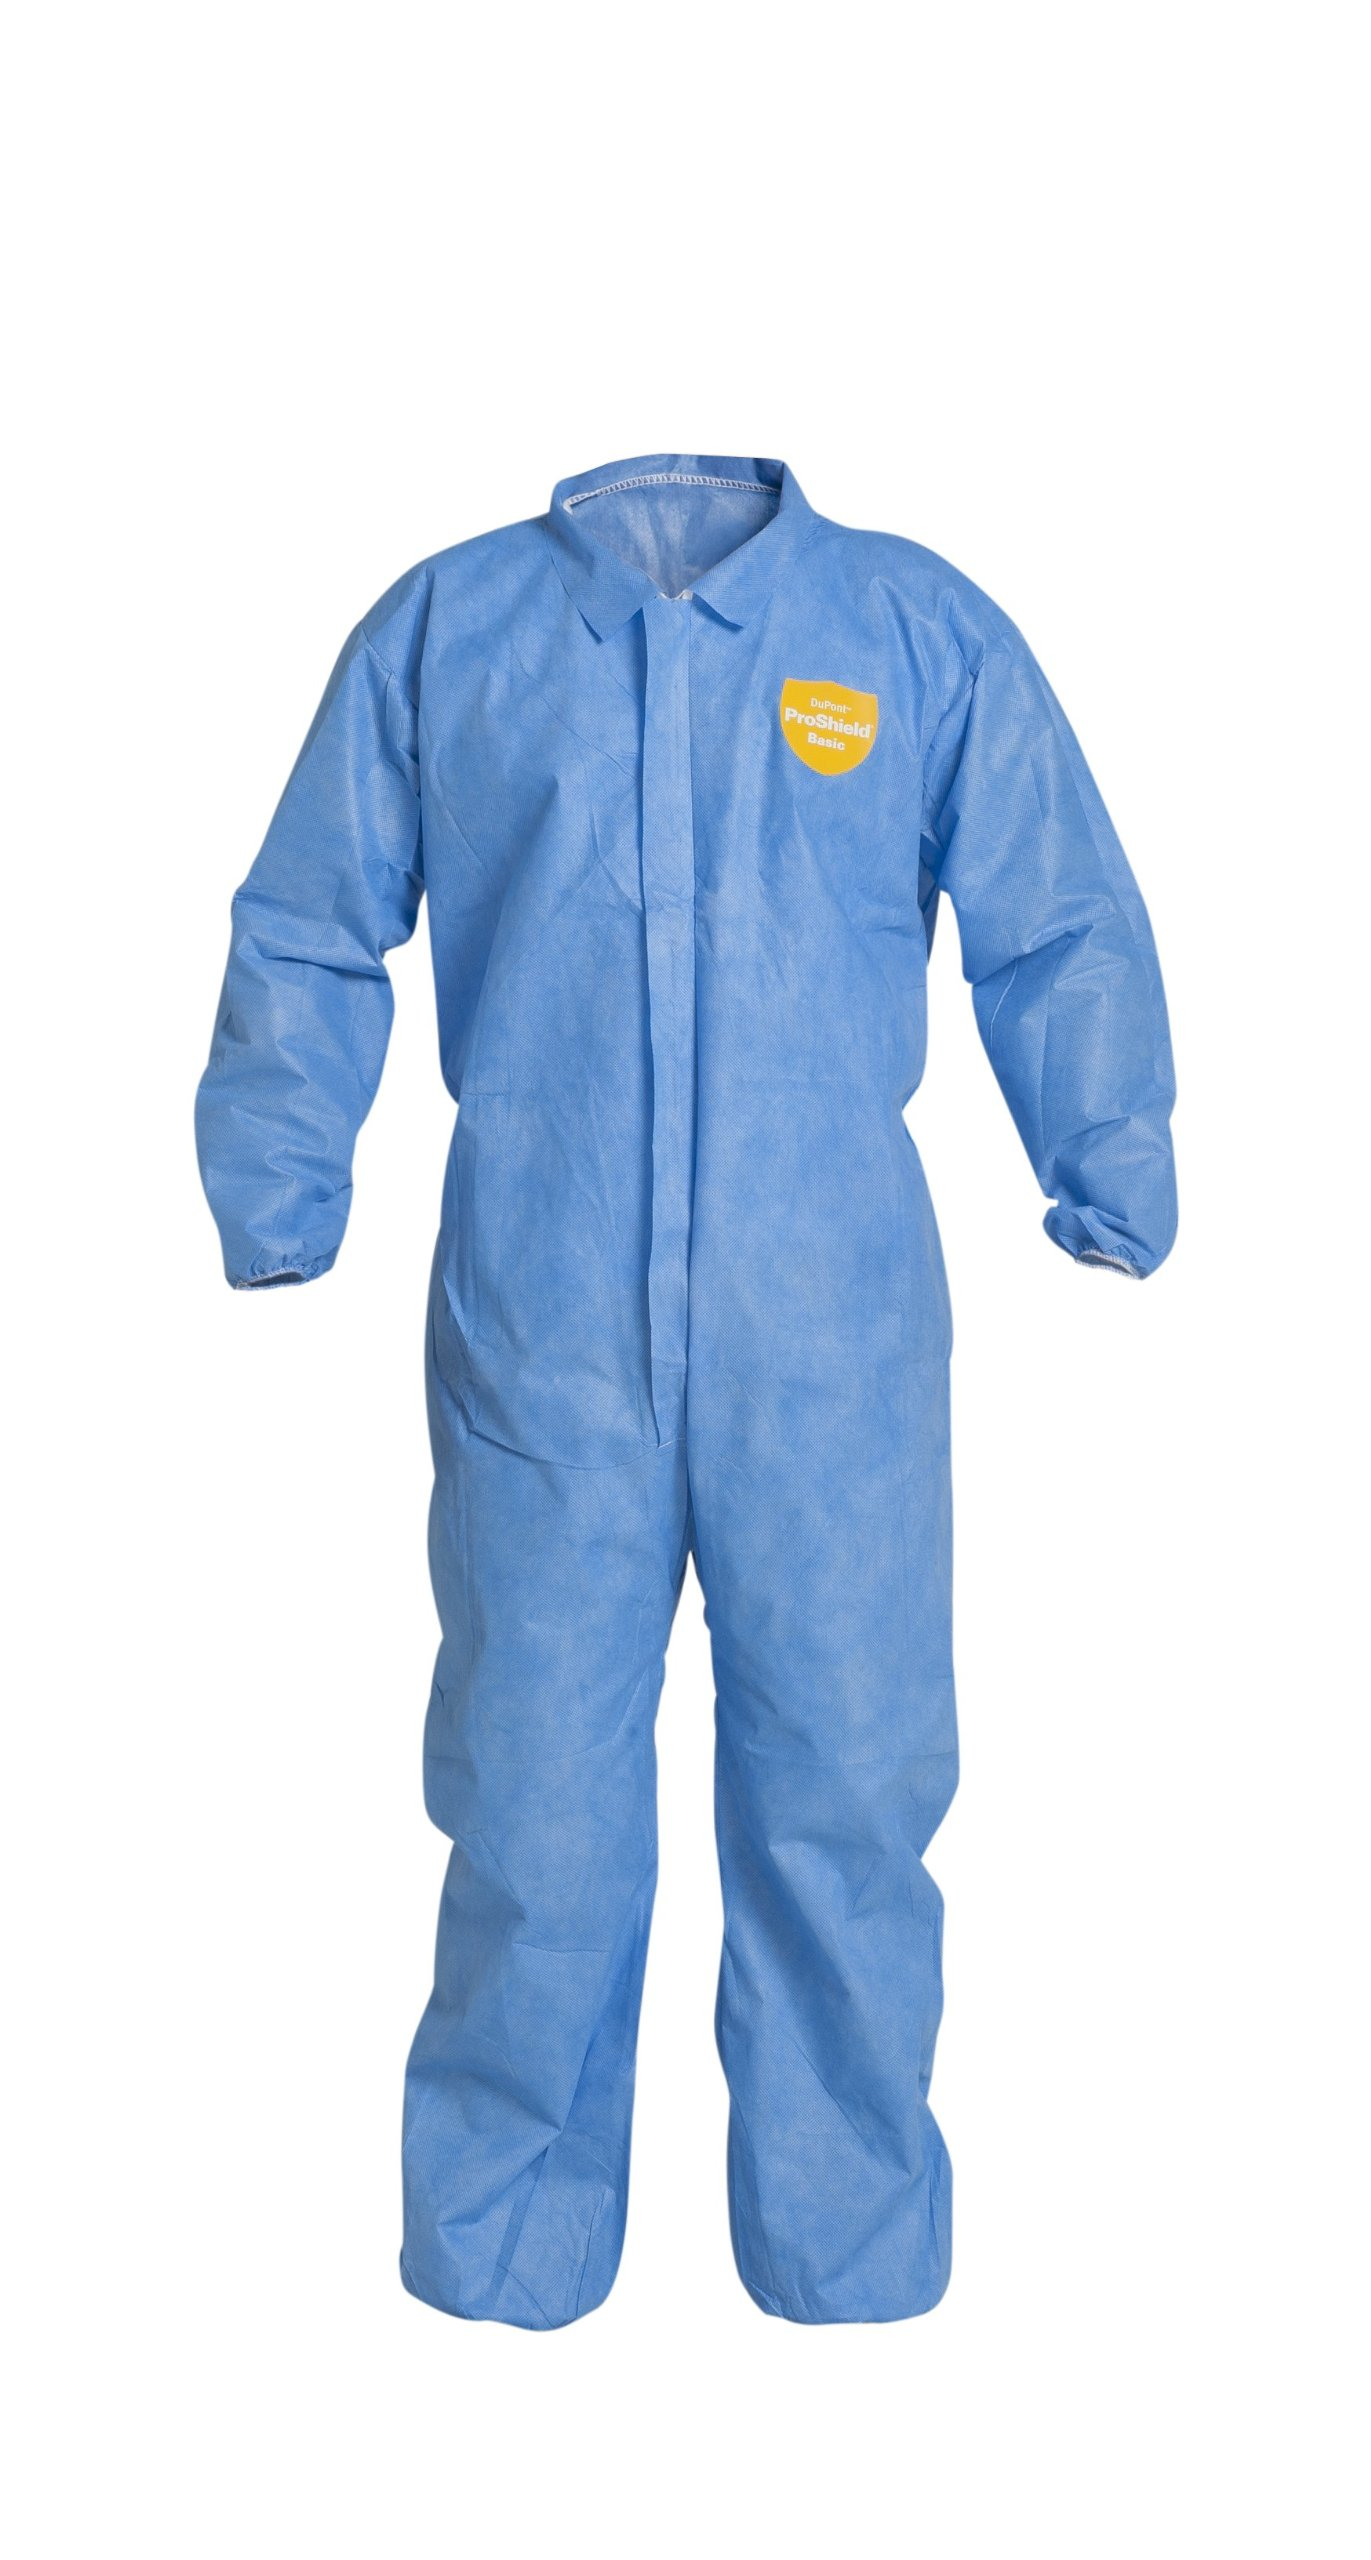 DuPont ProShield 10 PB125S Protective Coverall with Serged Seams, Disposable, Elastic Cuff and Ankles, X-Large, Blue (Pack of 25) by DuPont (Image #1)